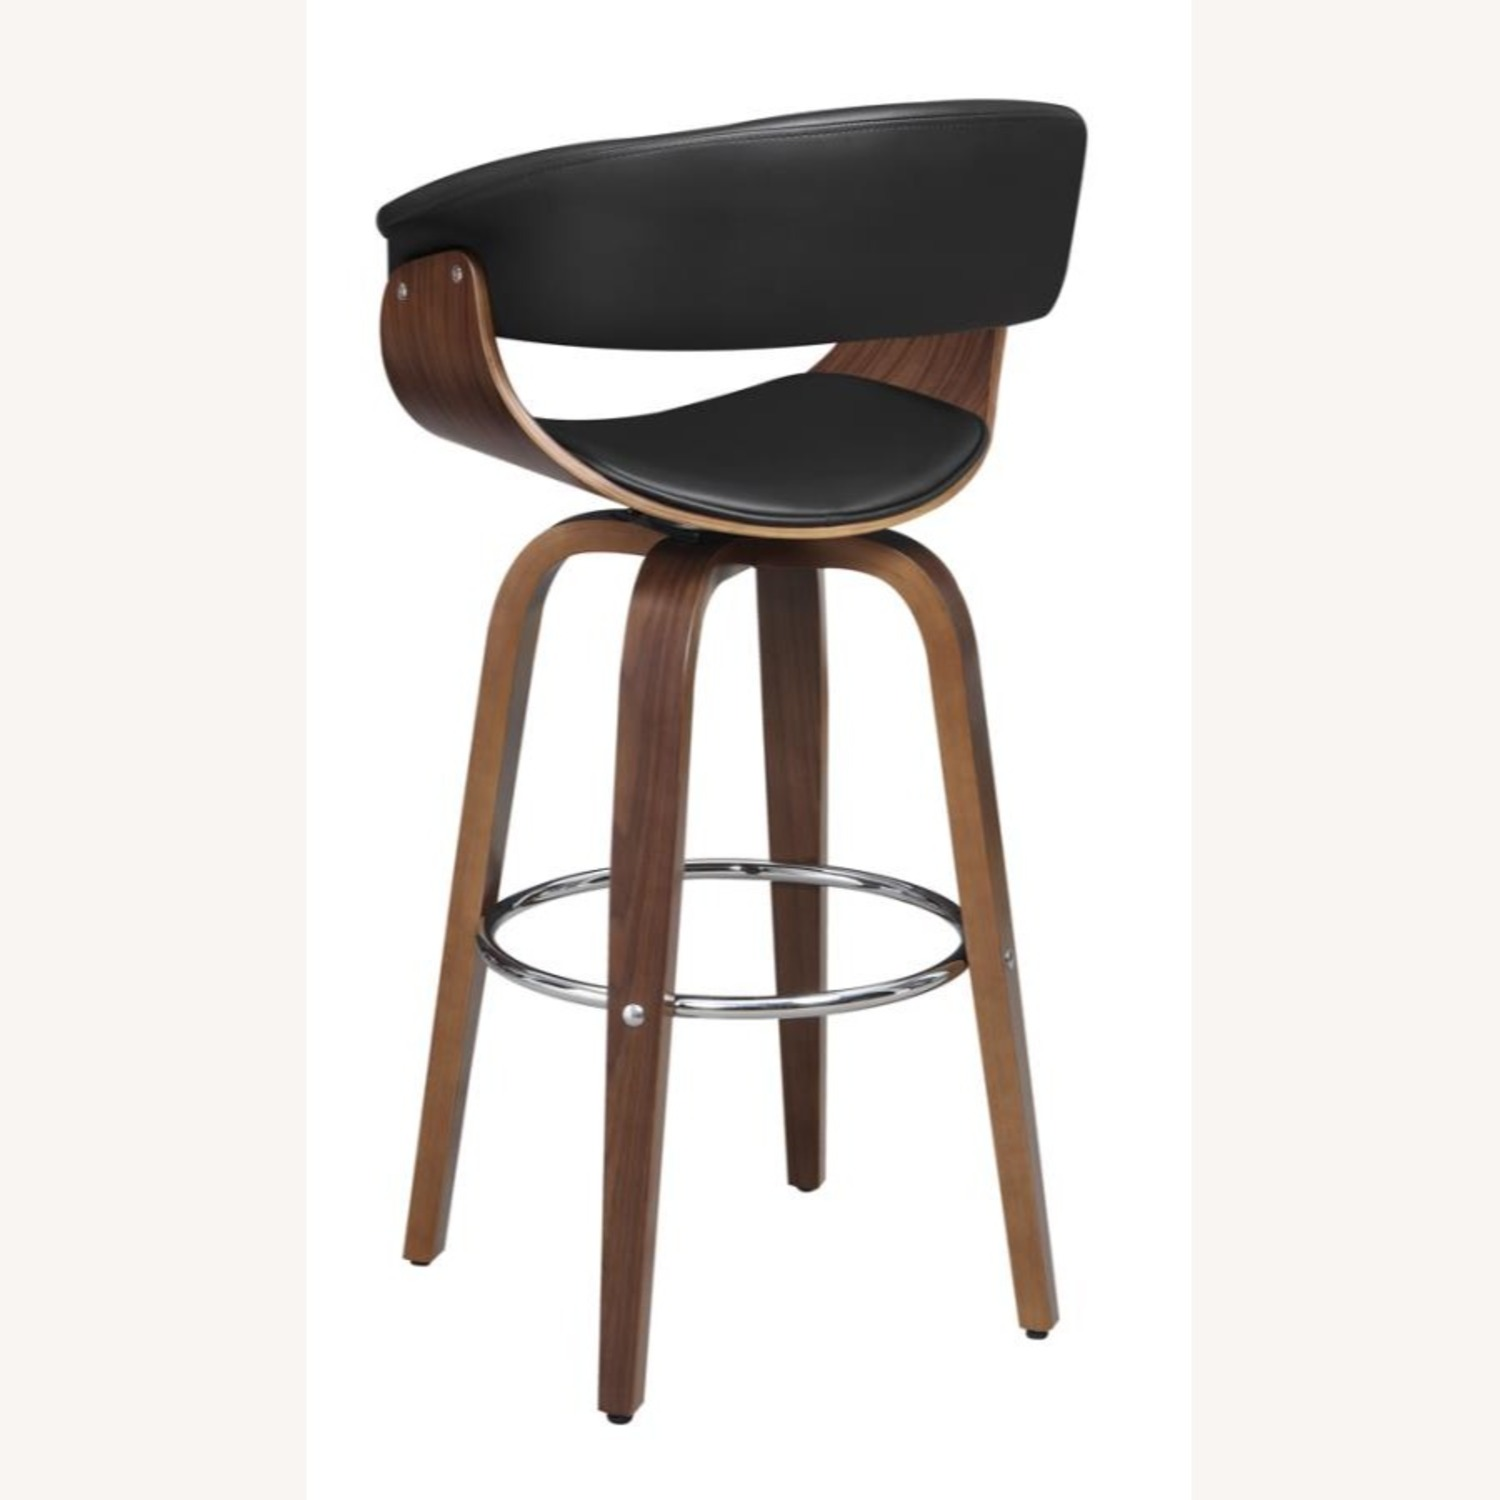 Swivel Bar Stool In Black Faux Leather Upholstery - image-4